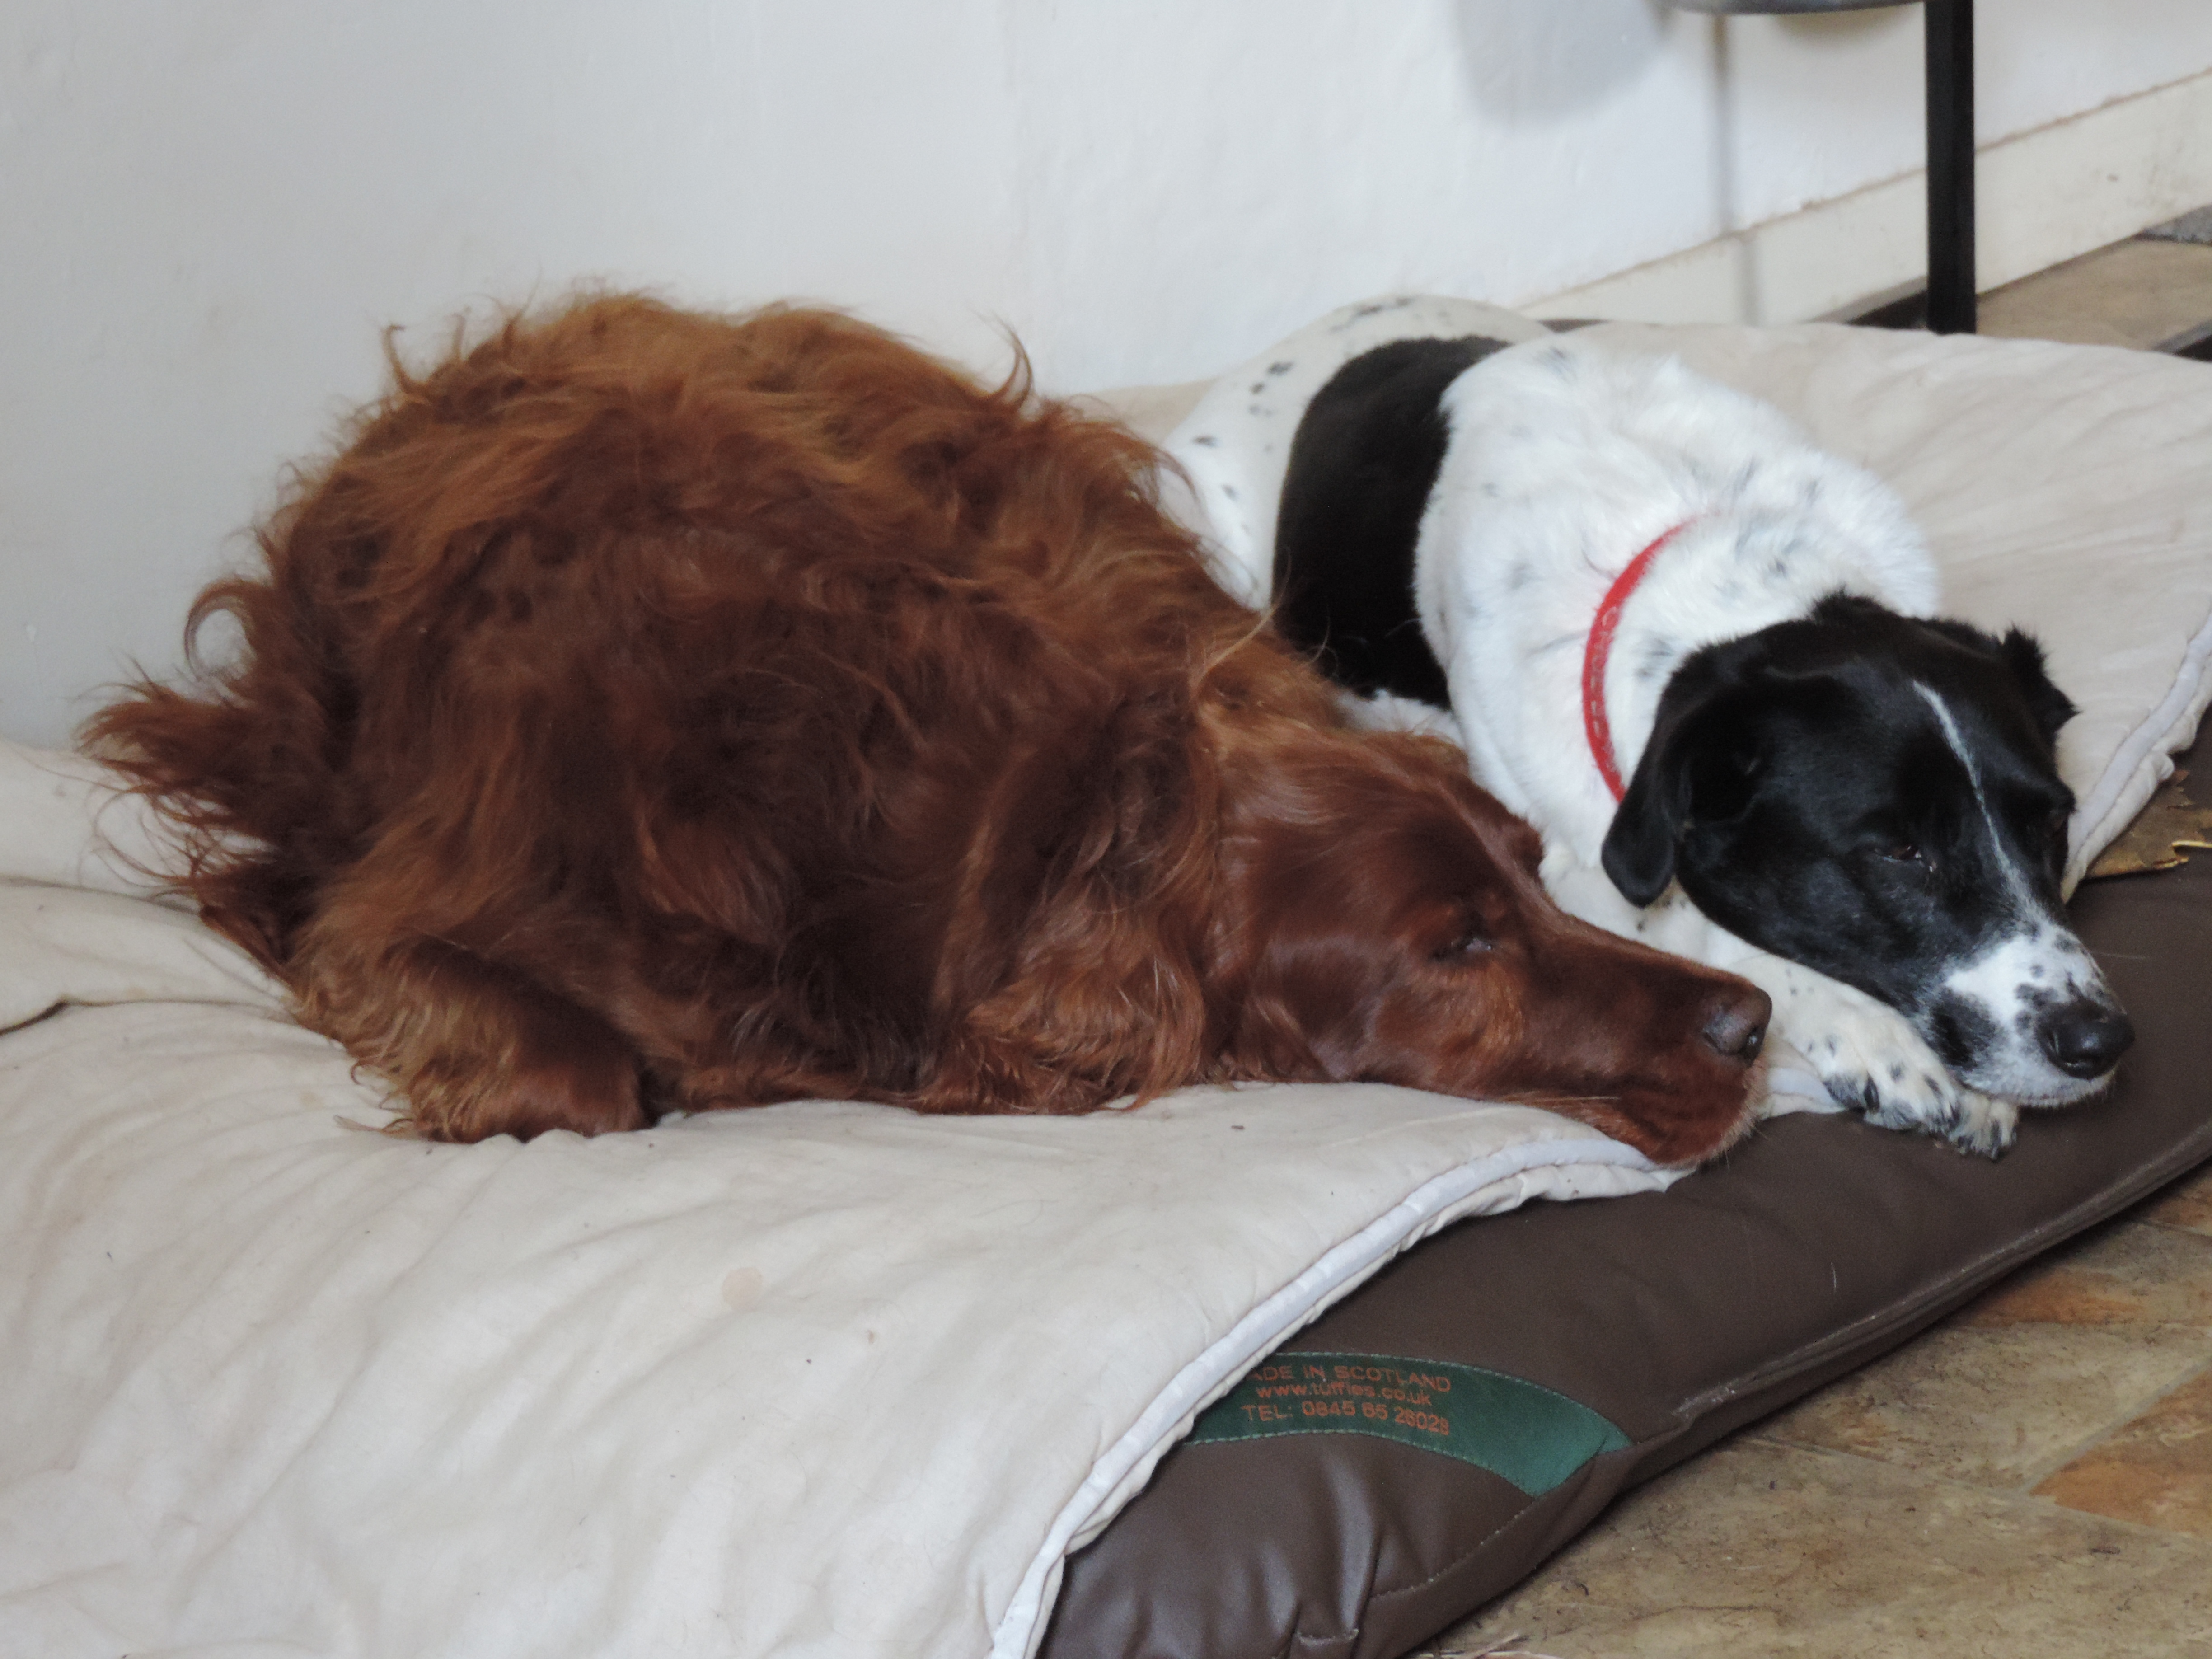 2 dogs resting